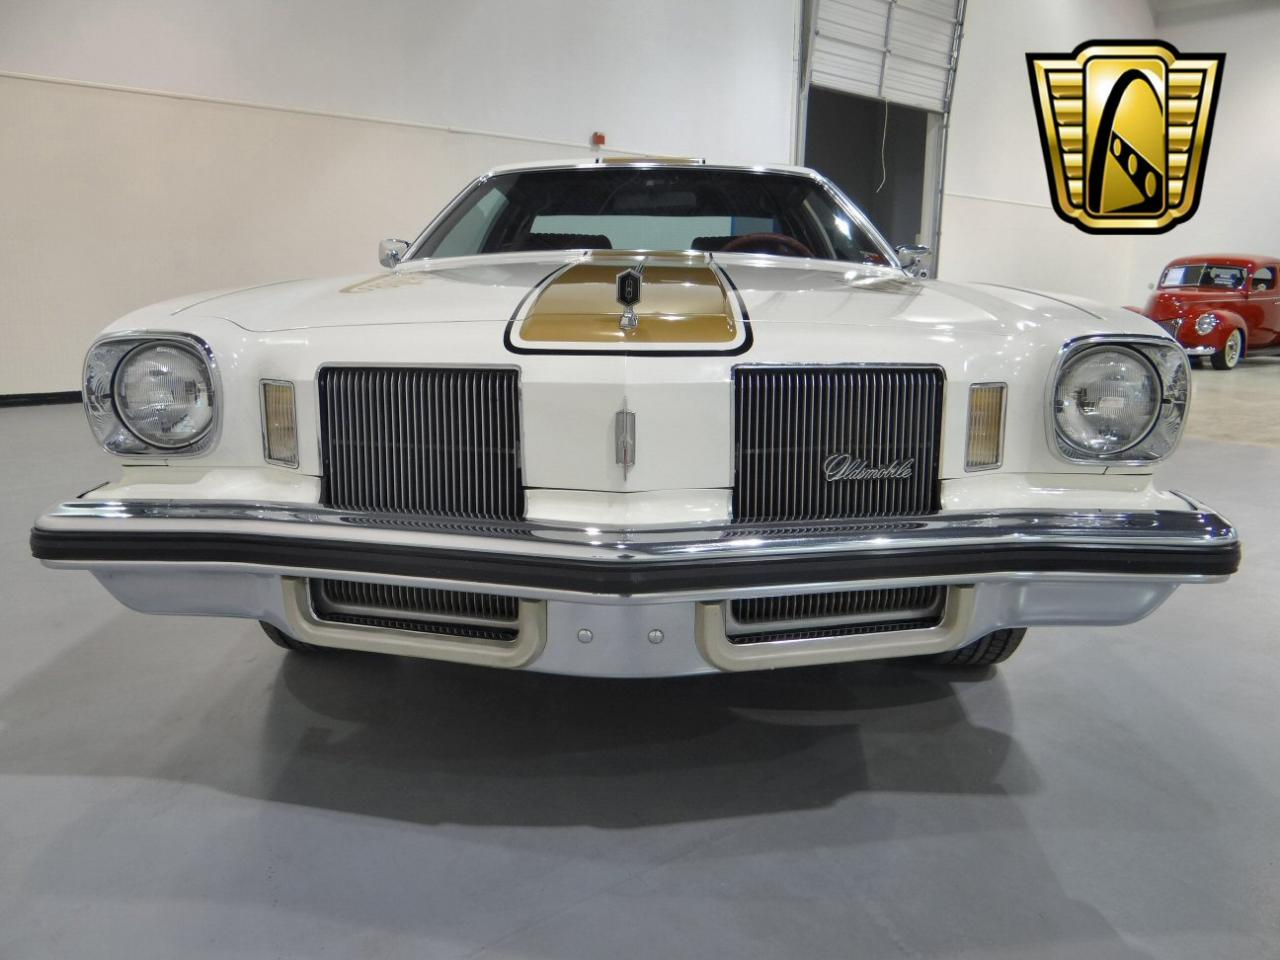 1974 oldsmobile cutlass salon w30 pace car 5870 miles for 74 cutlass salon